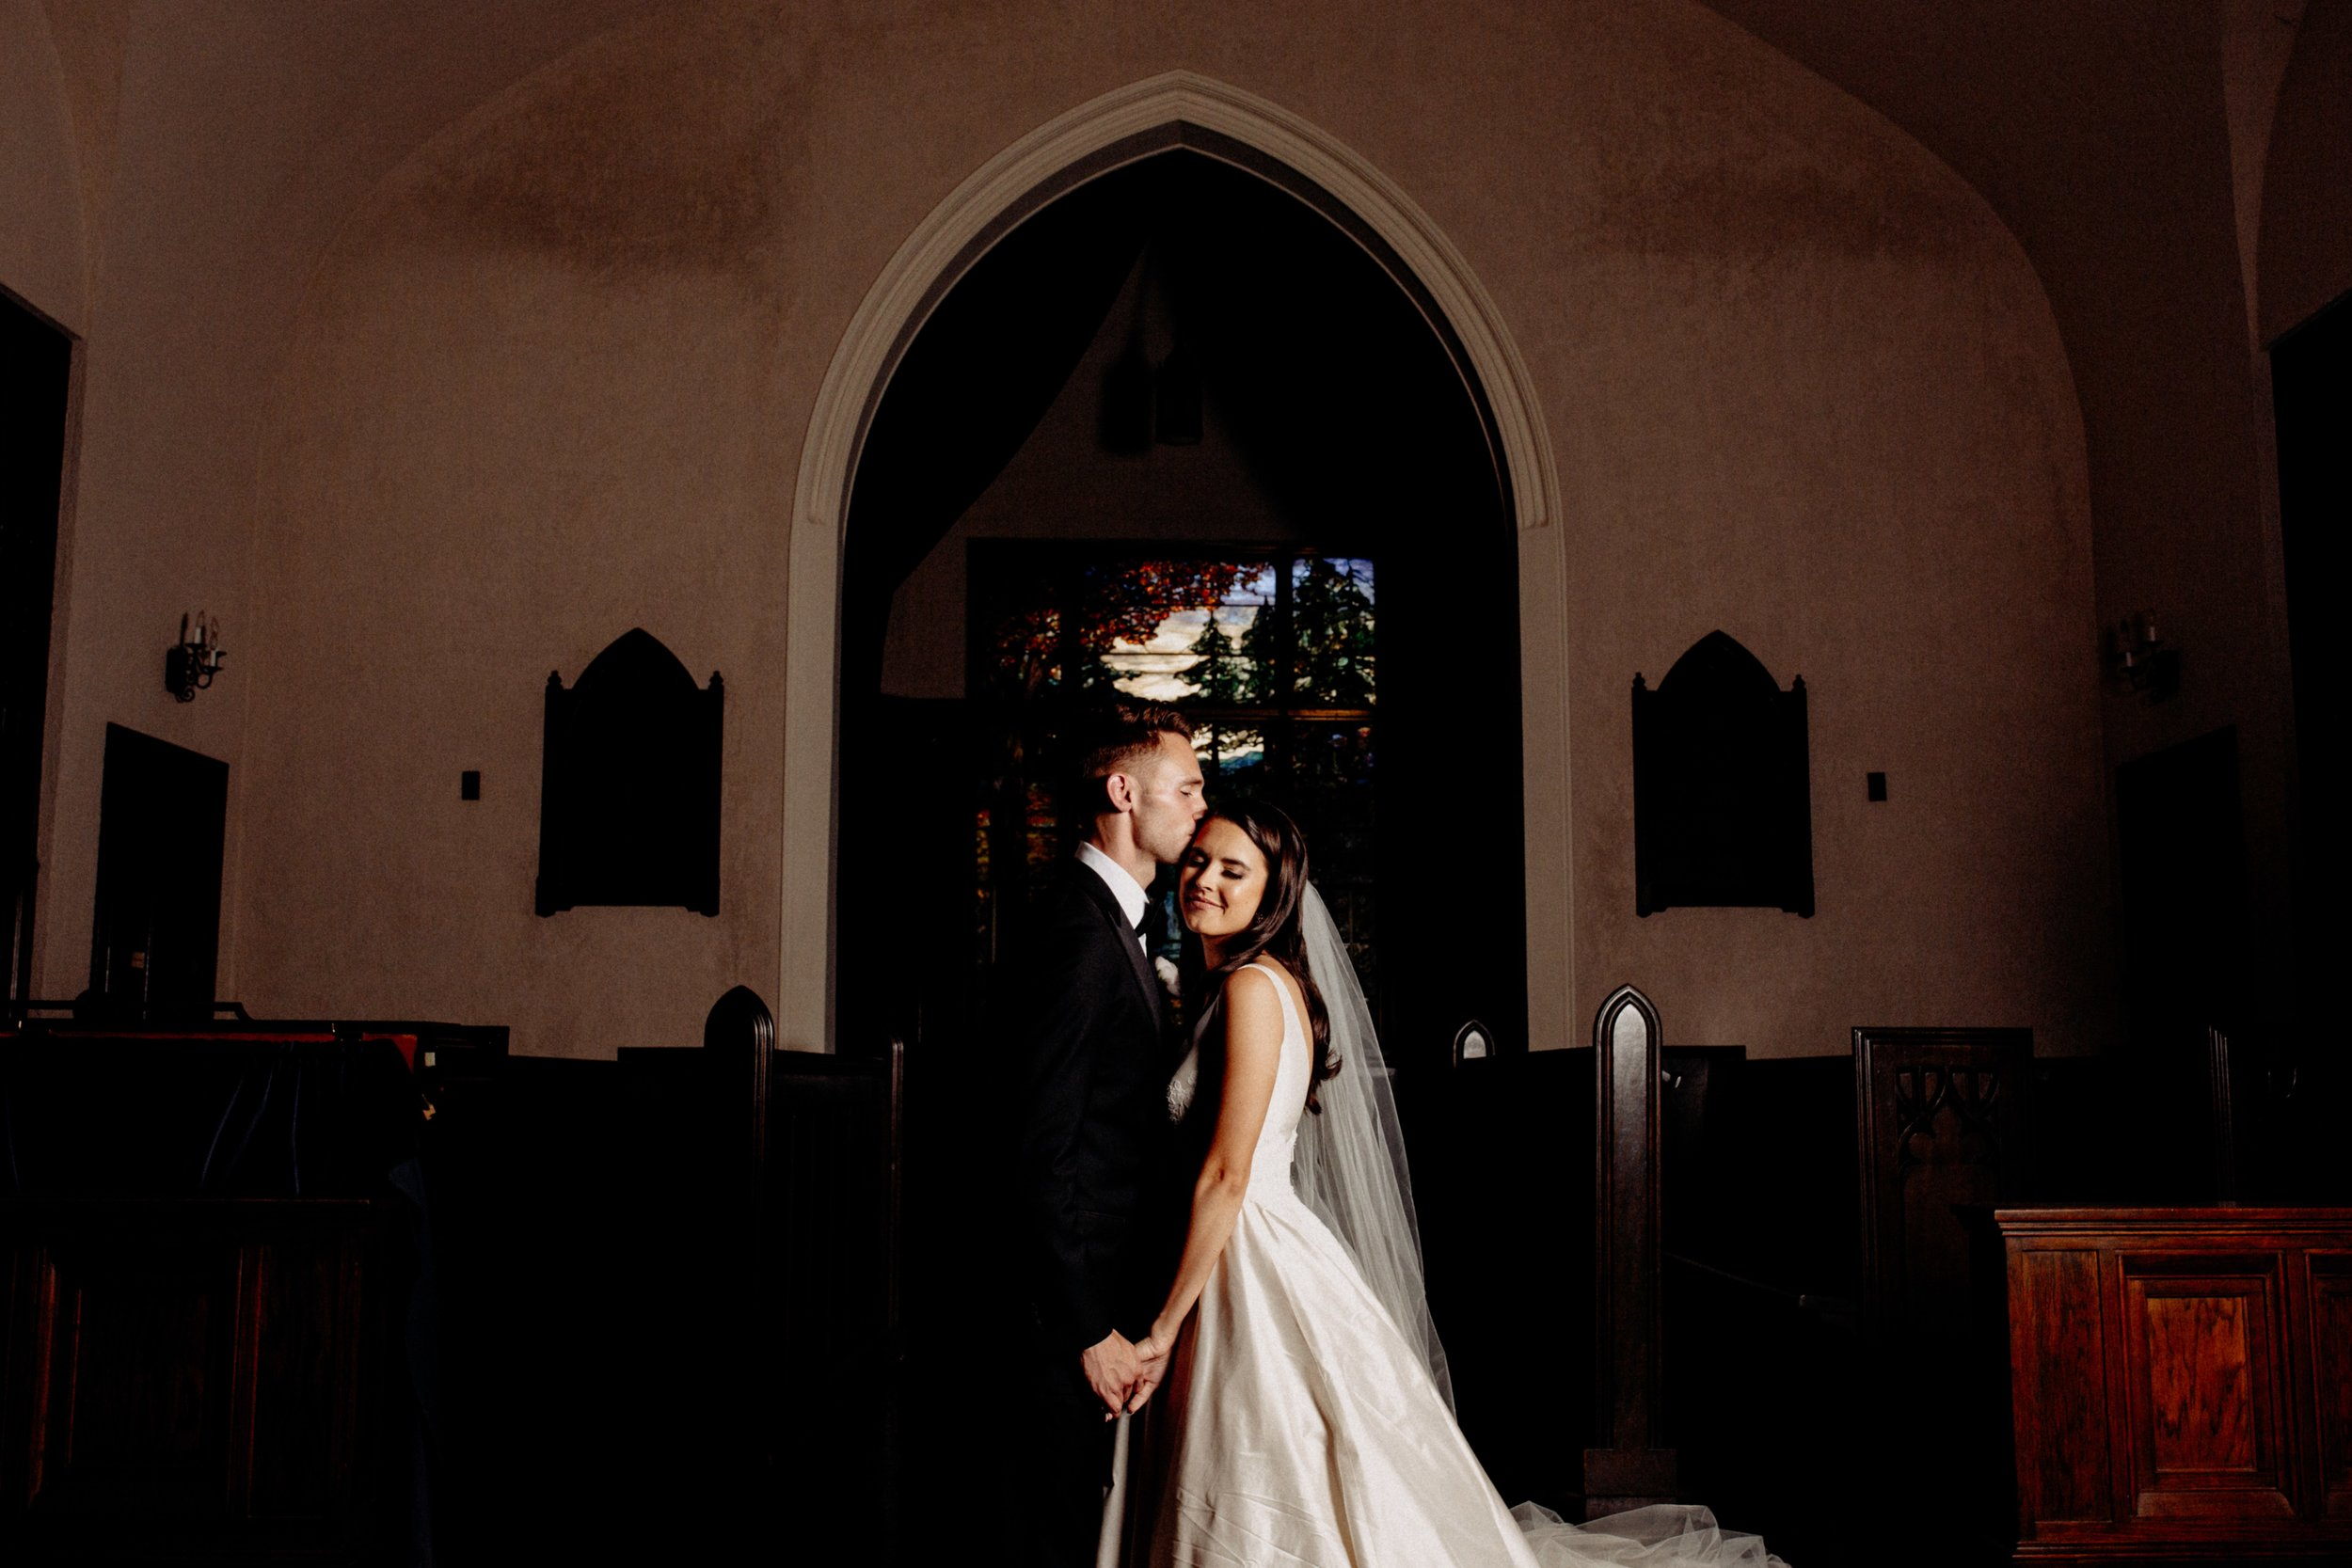 st-anthony-hotel-wedding-photography-10058san-antonio.JPG